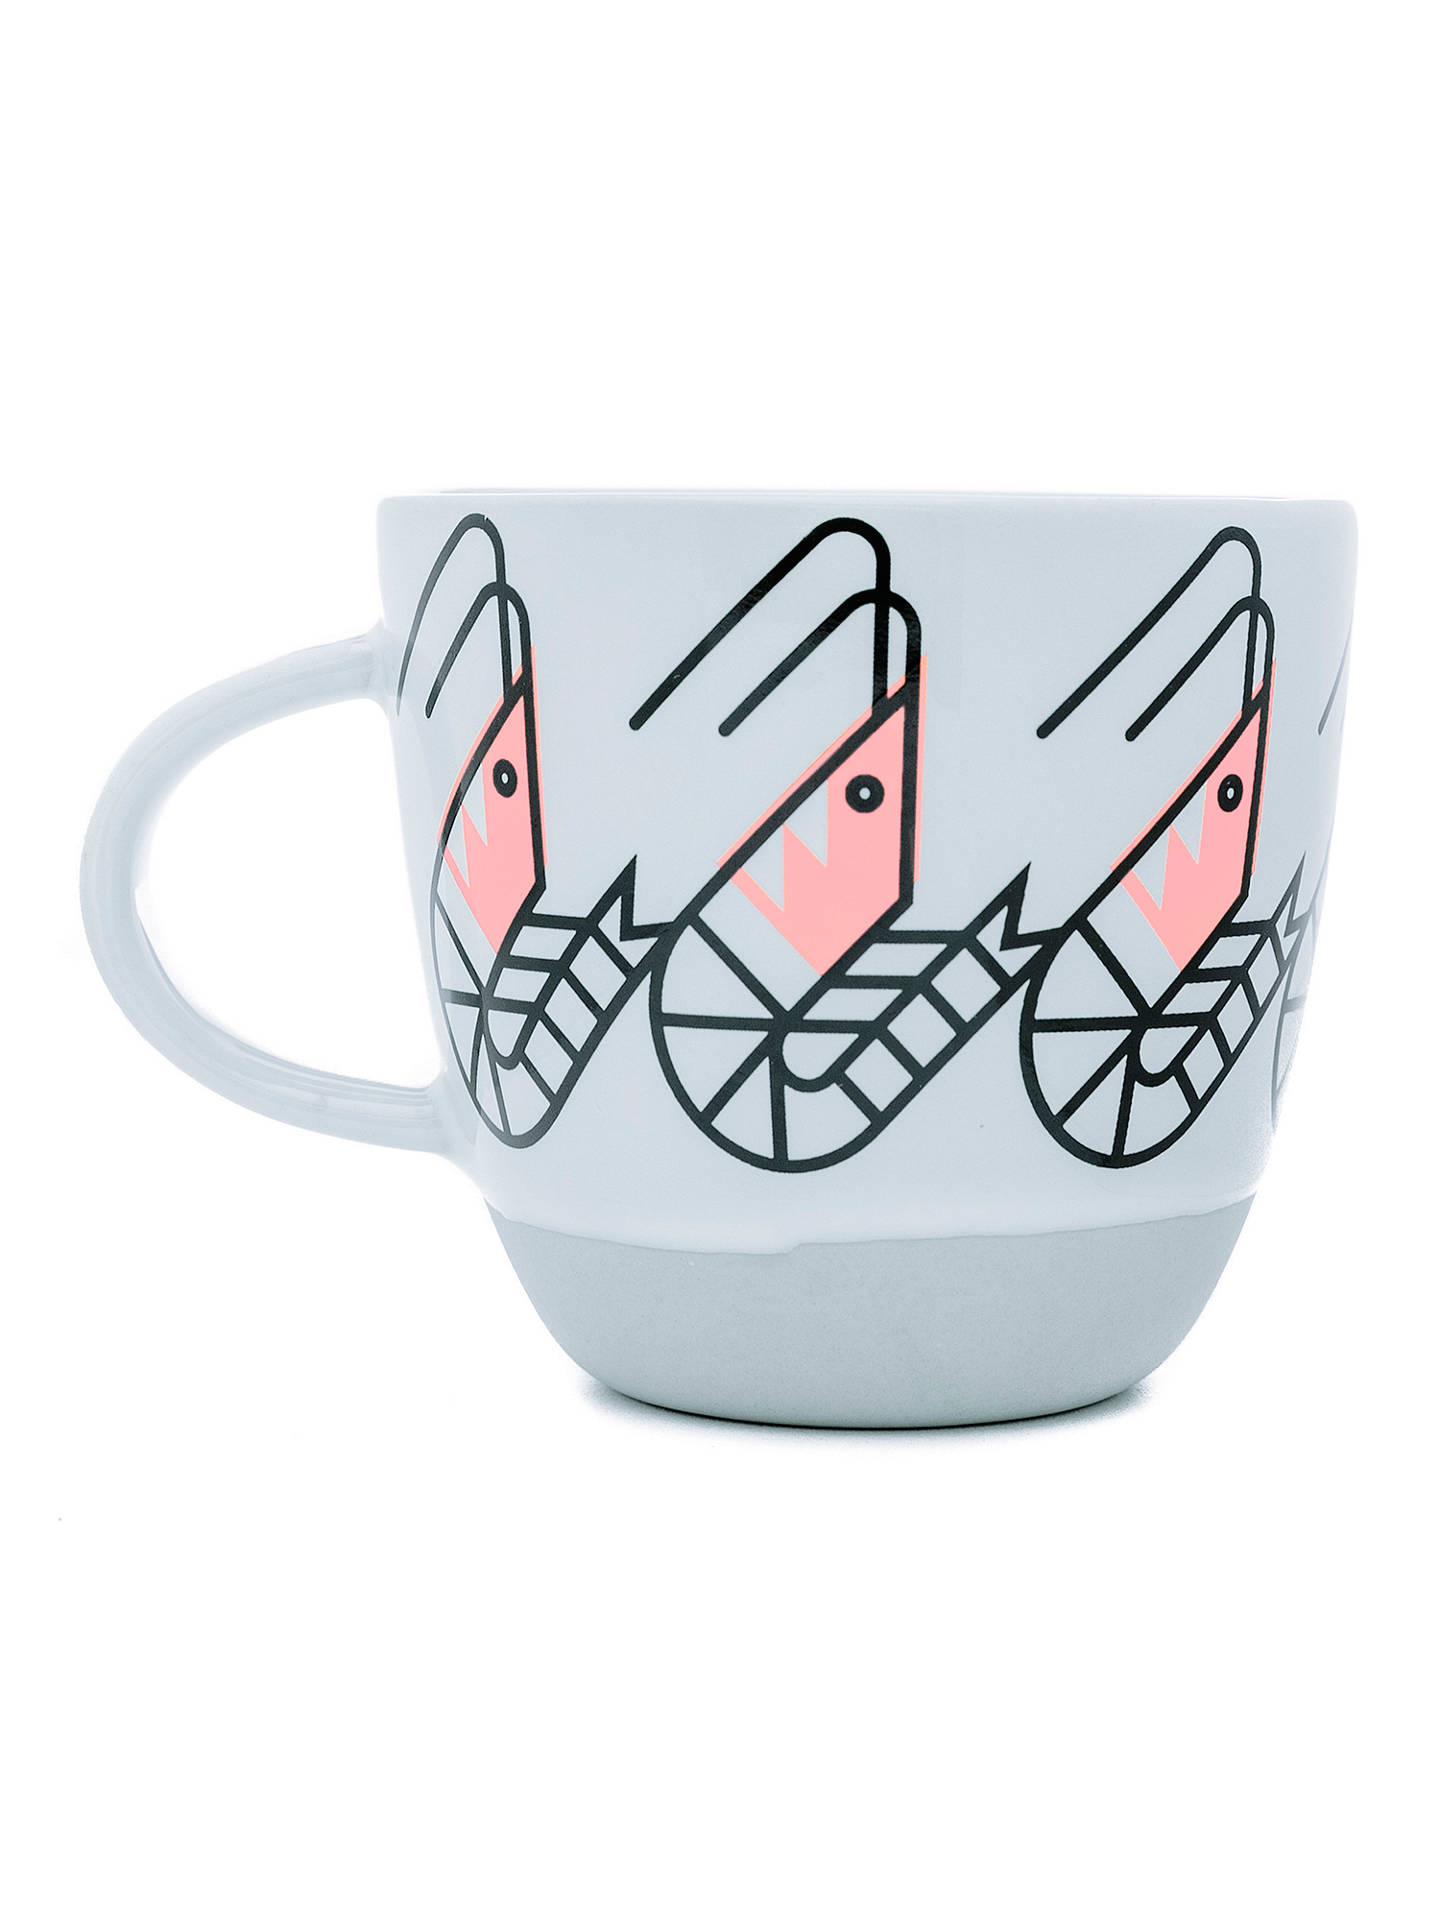 BuyBert & Buoy Shrimp Mug, White/Multi, 330ml Online at johnlewis.com